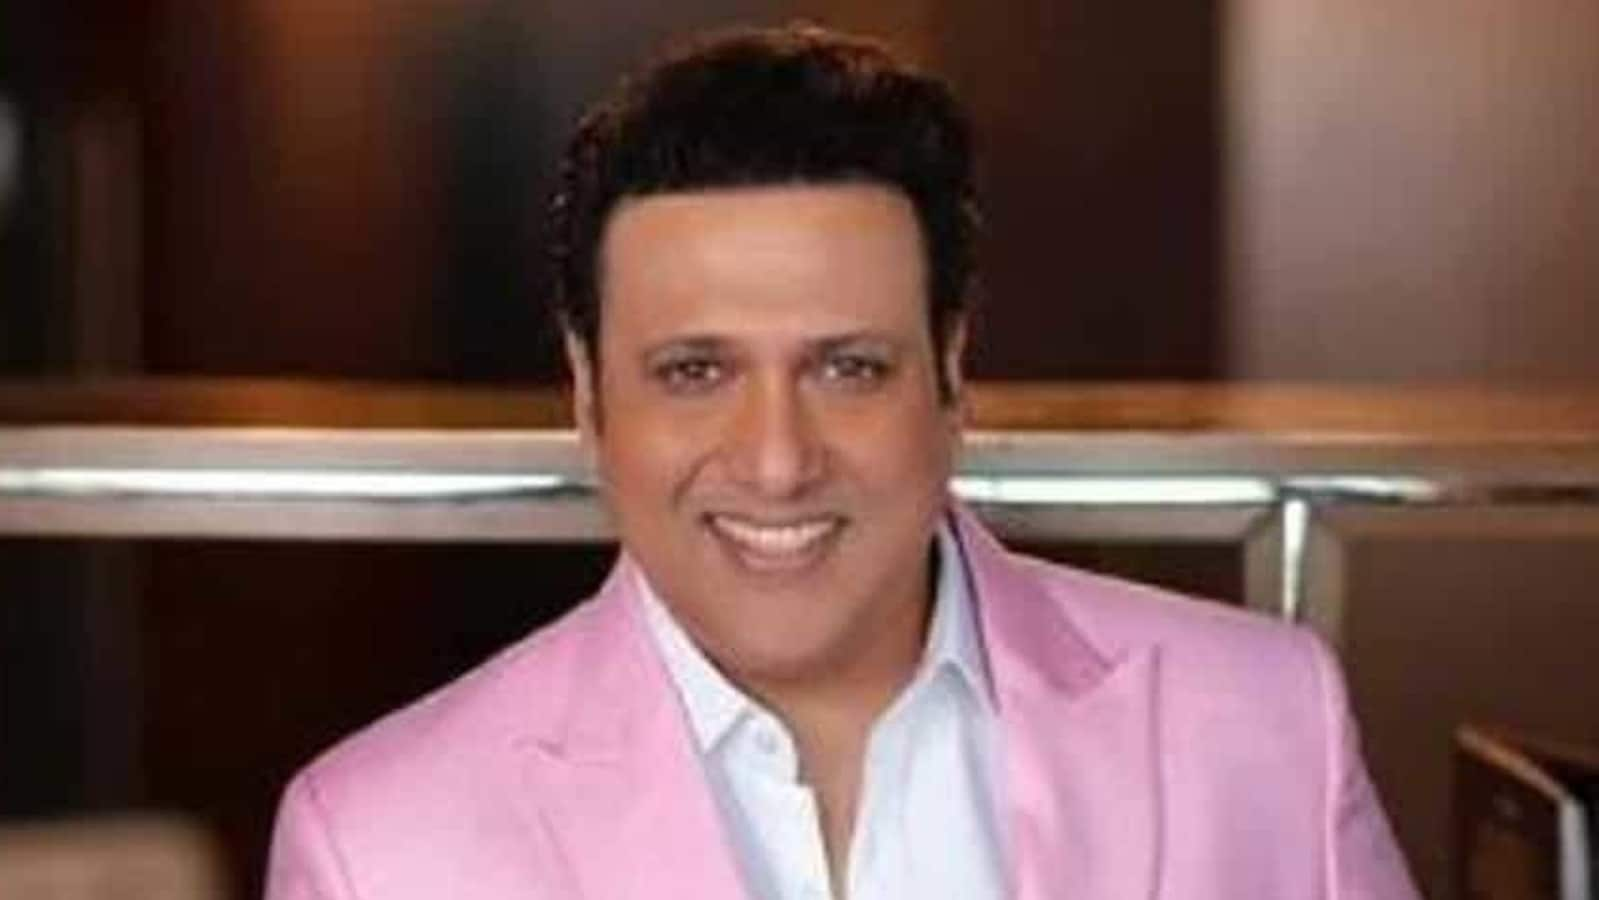 Govinda says he's no longer 'pious', has been corrupted: 'Now I party, smoke, drink' - Hindustan Times